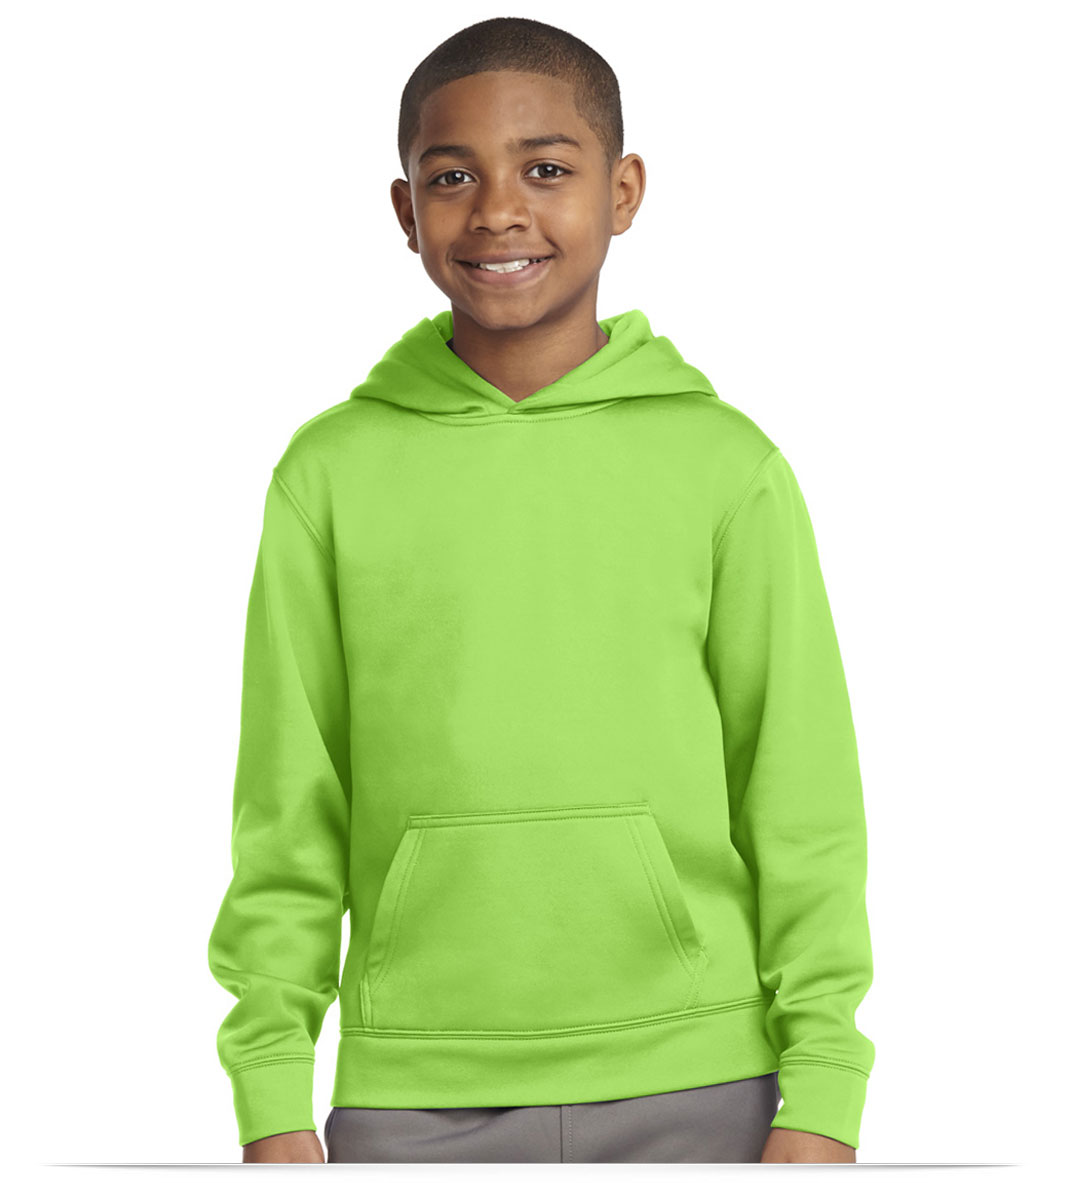 Customize Sport-Tek Youth Sport-Wick Fleece Hoodie